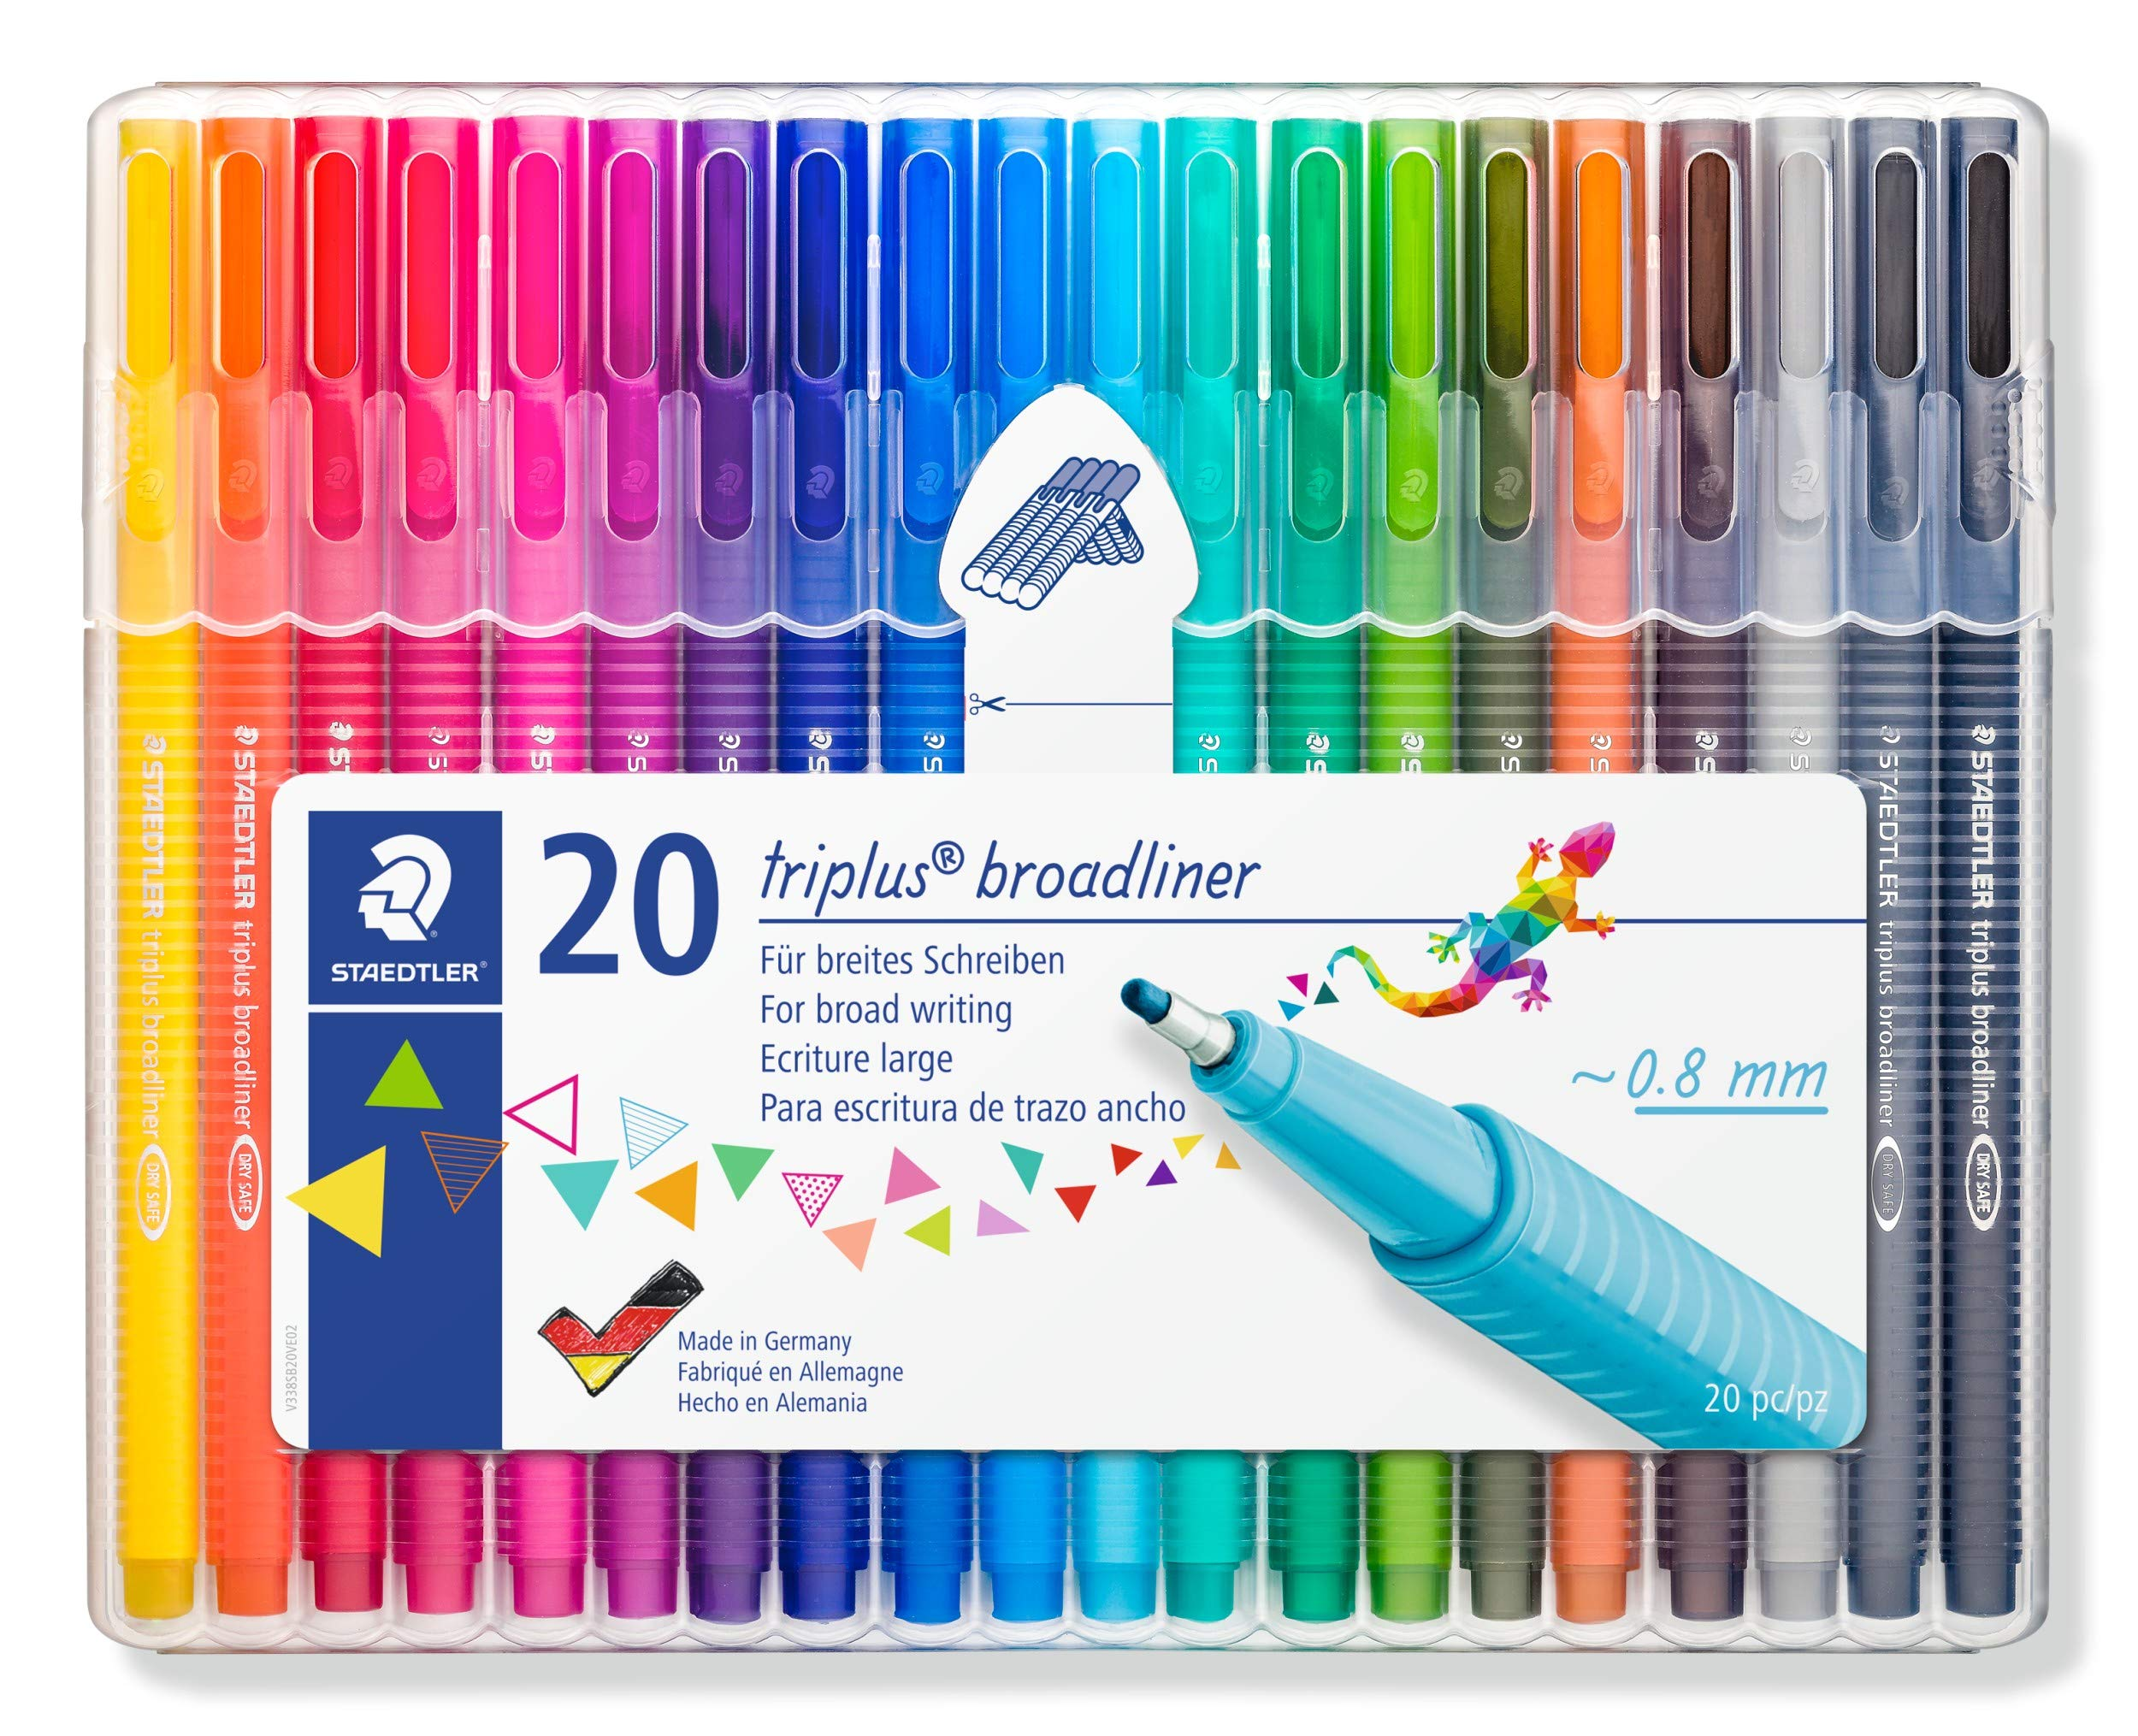 STAEDTLER 338 Triplus Broadliner, Assorted Colours, Pack of 20 by STAEDTLER